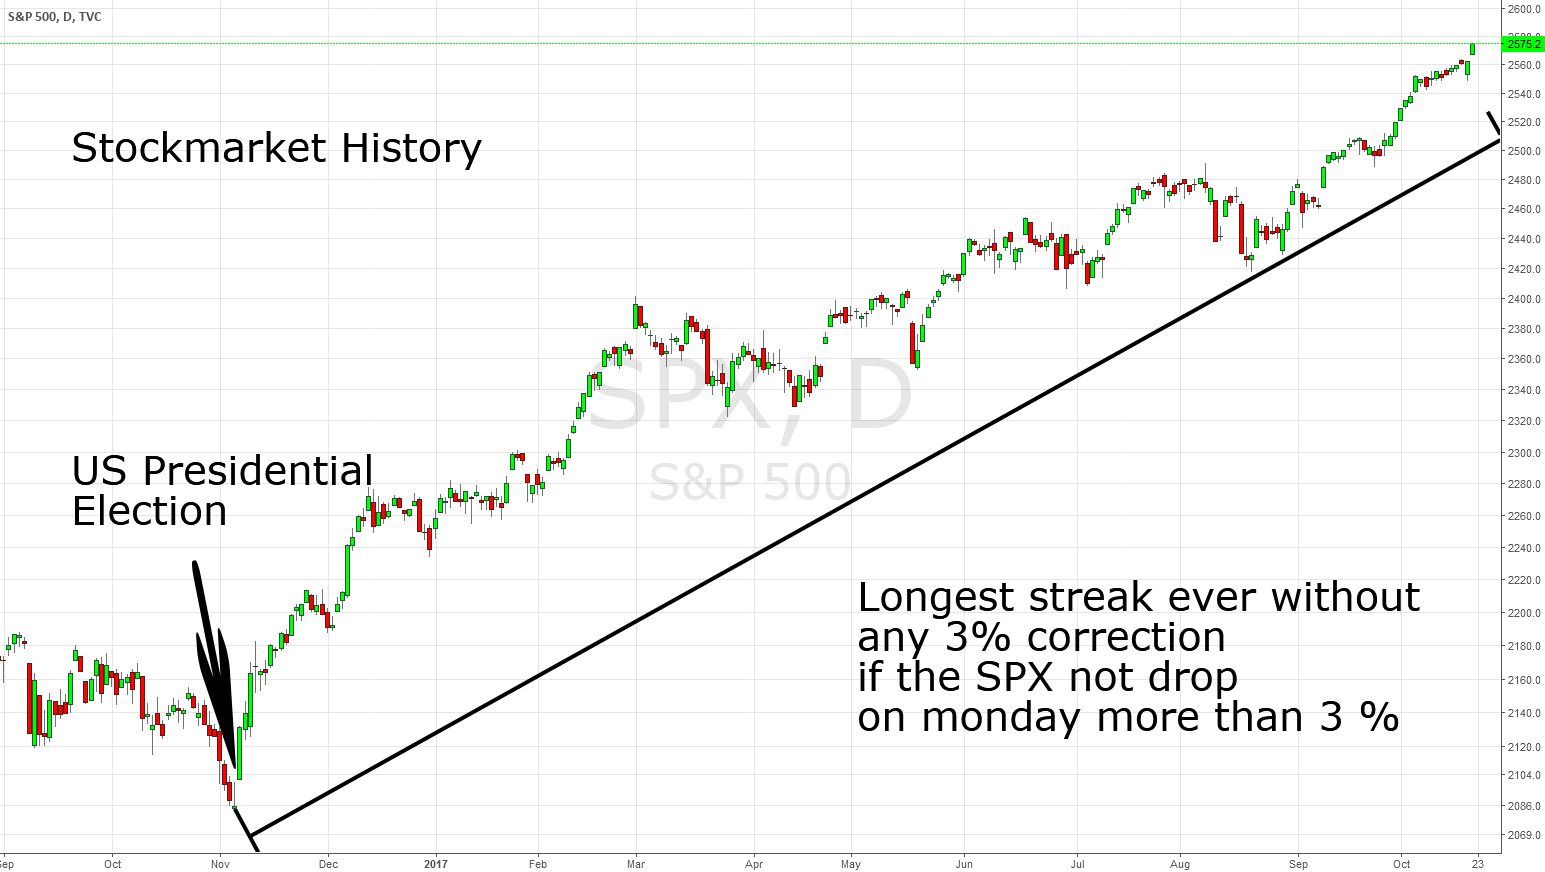 Stockmarket History: Longest streak without 3% correction ever